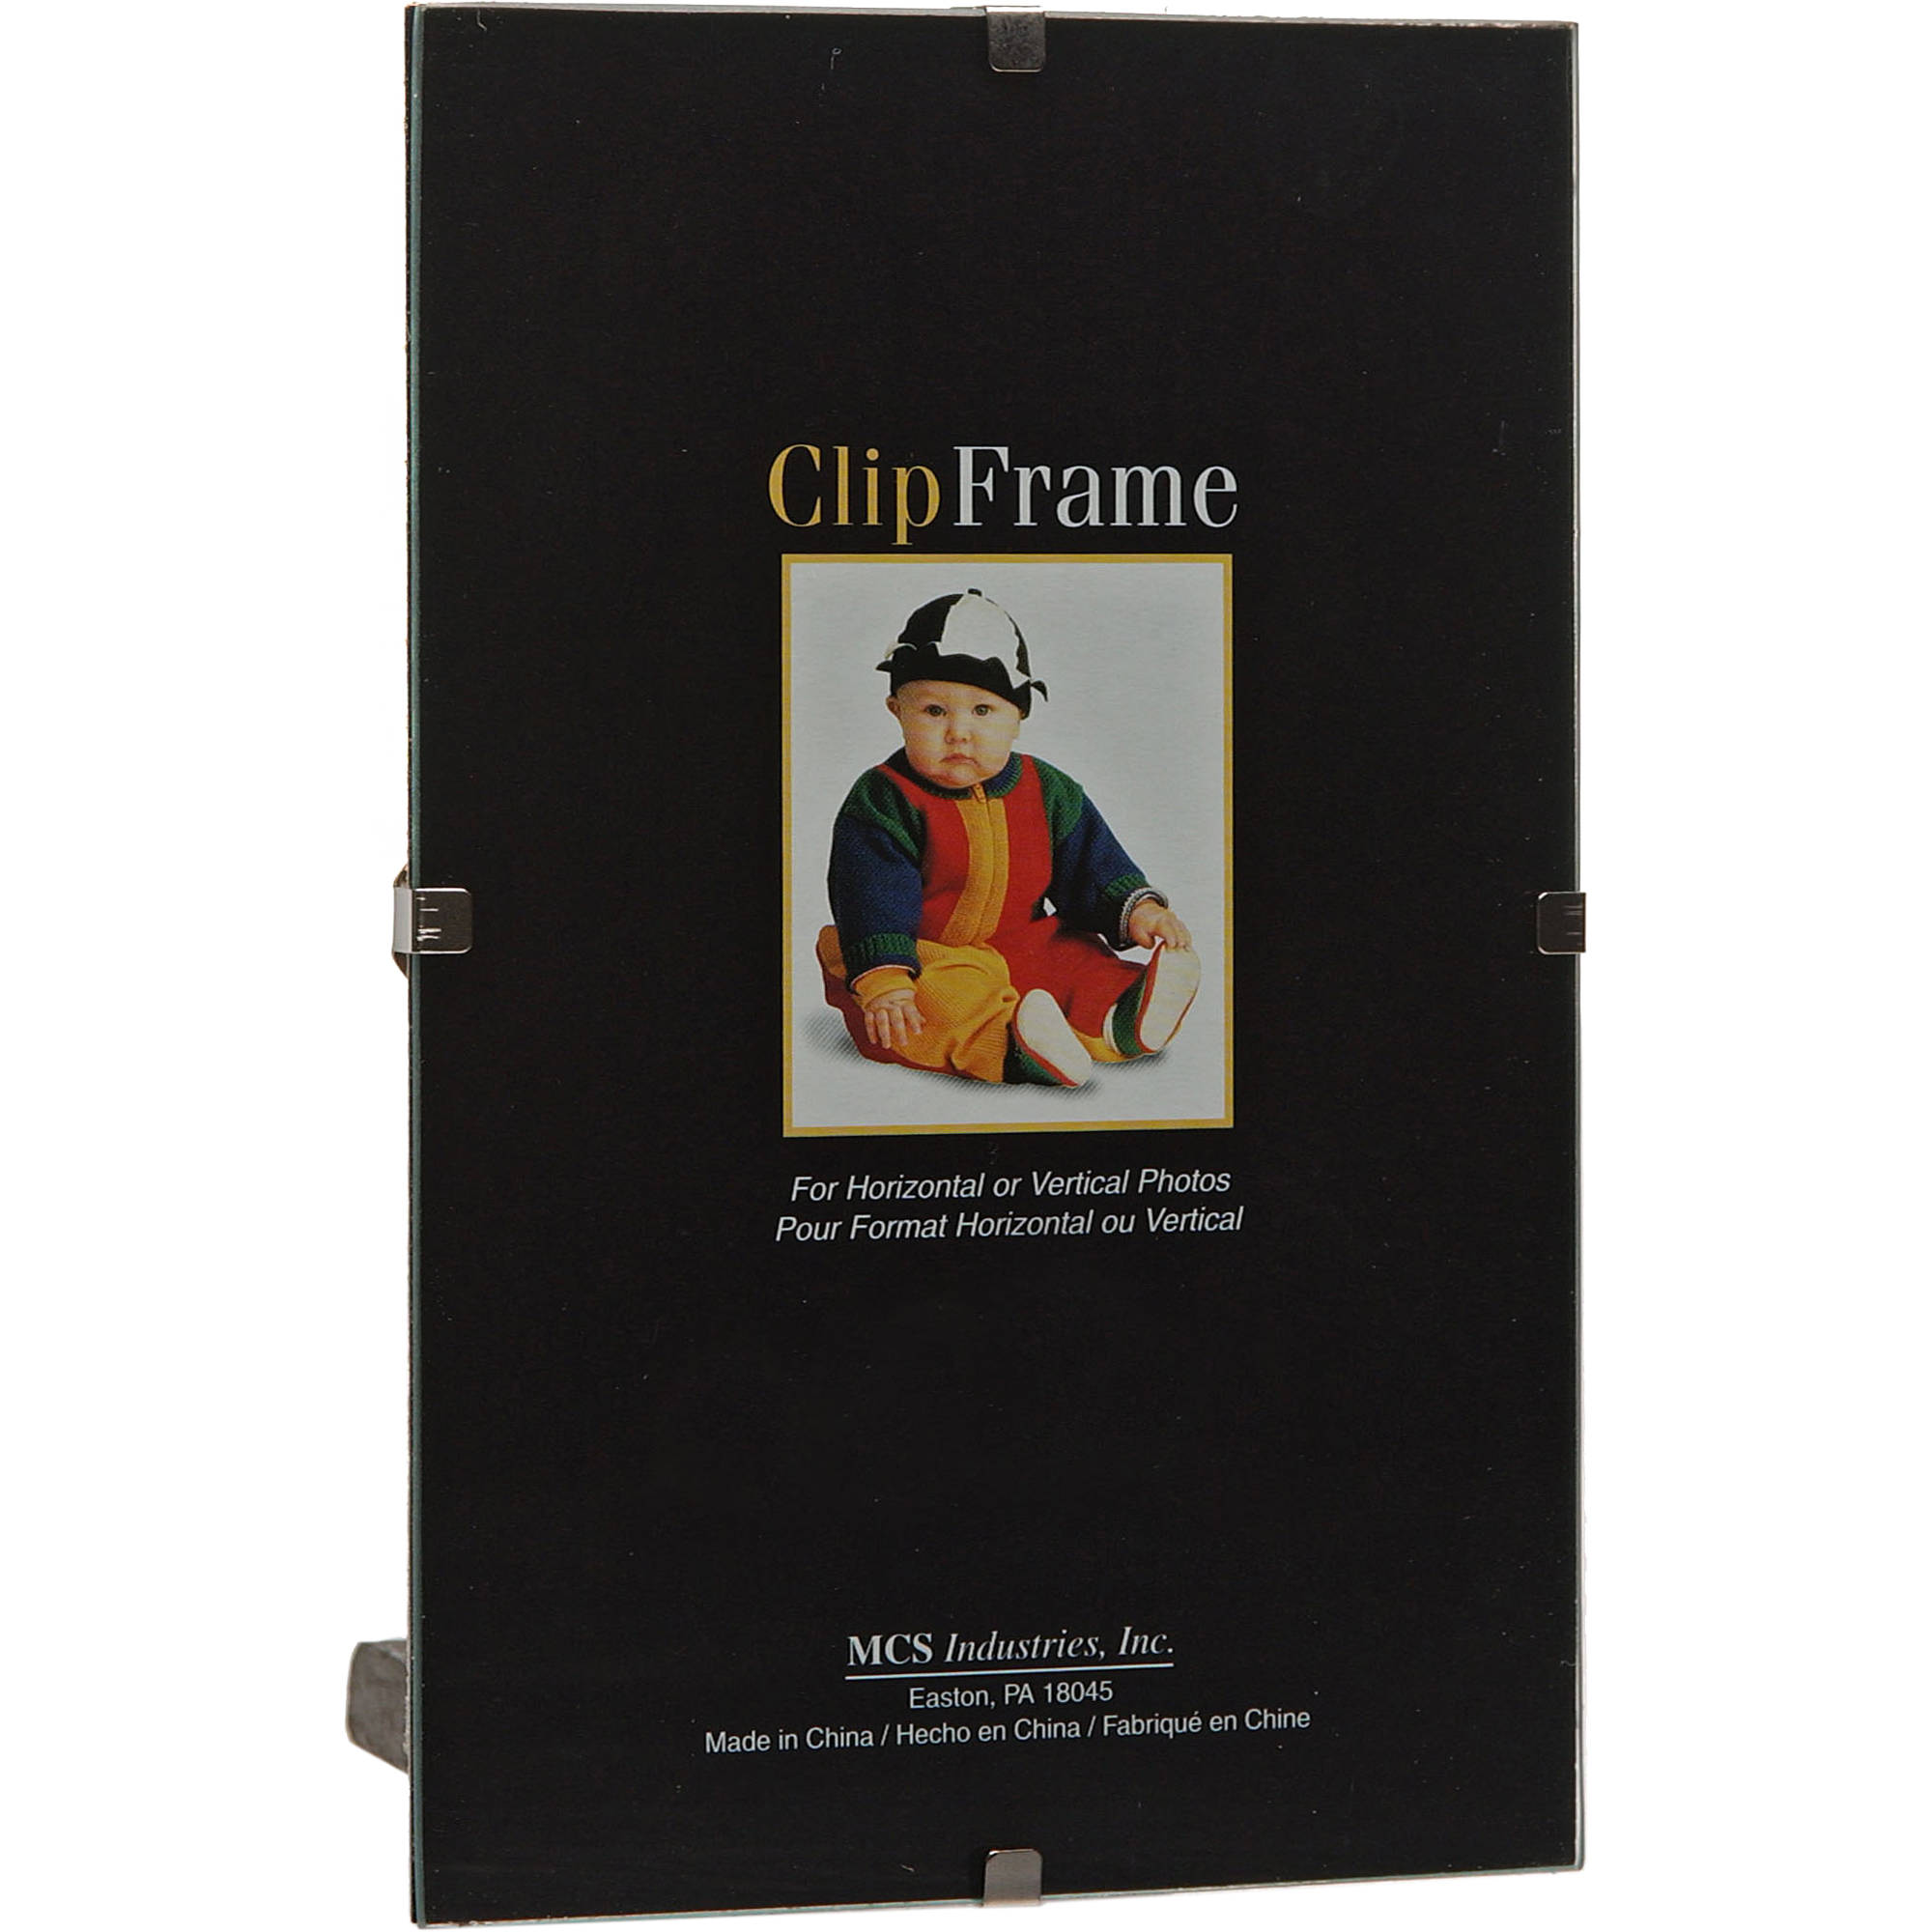 Mcs Clip Frame 11 X 14 55114 Bh Photo Video